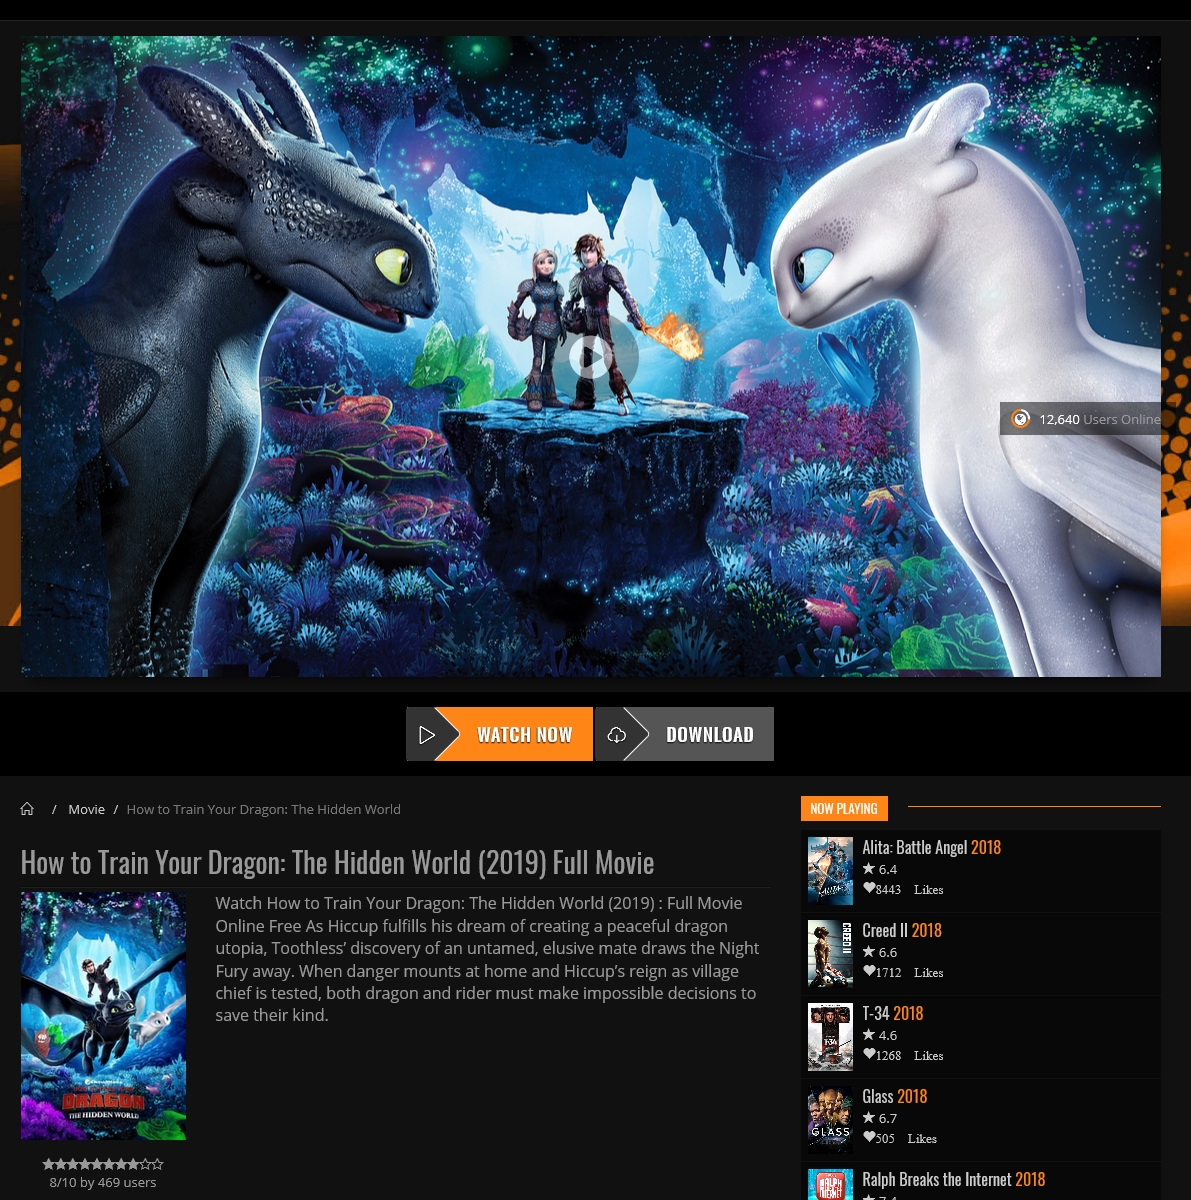 123movies Watch How To Train Your Dragon The Hidden World Full Movie 2019 High Quality Download Text Images Music Video Glogster Edu Interactive Multimedia Posters